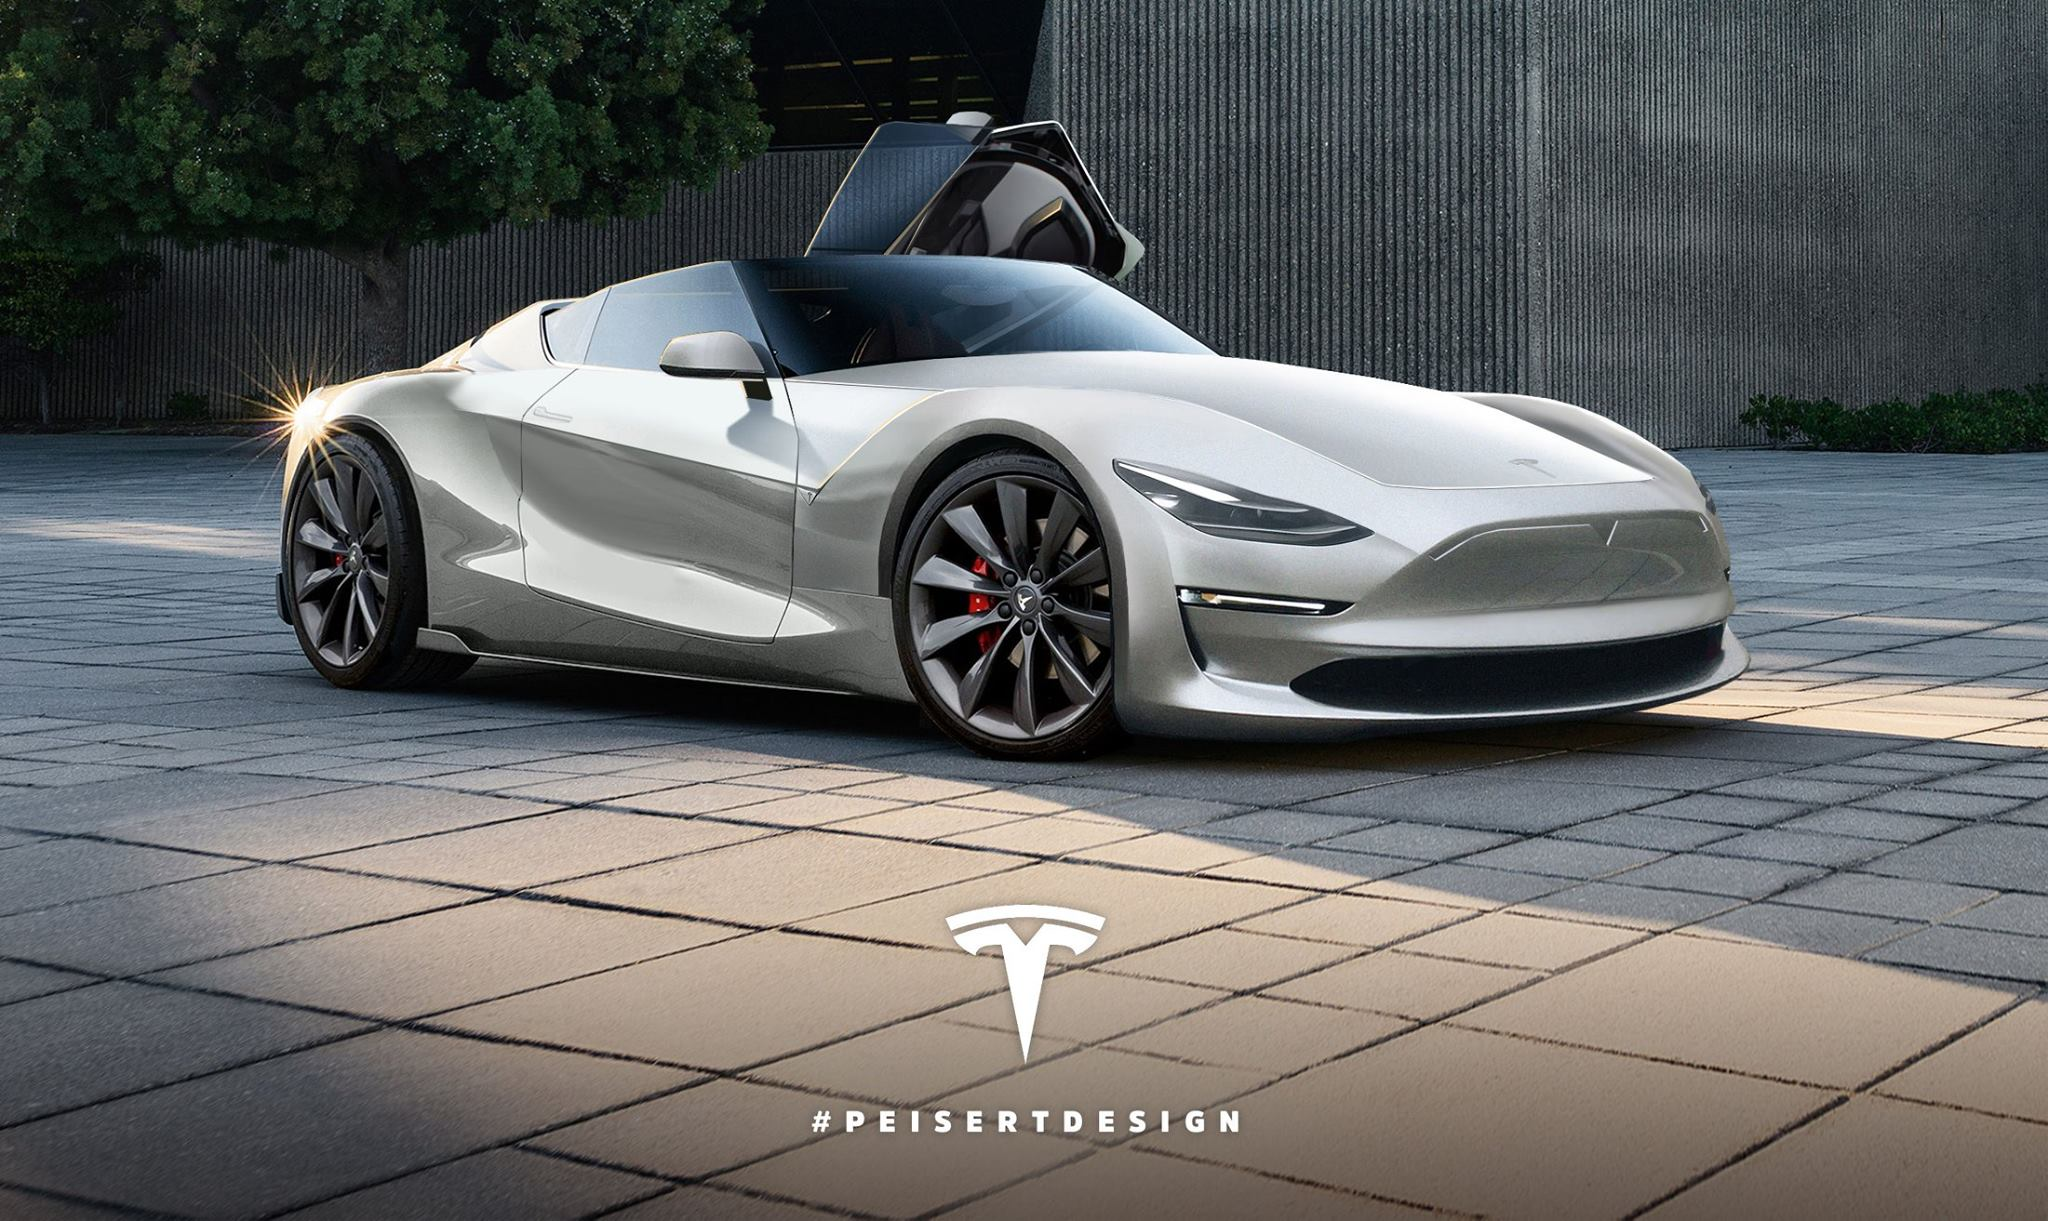 Next generation Tesla Roadster will be a convertible, says Musk